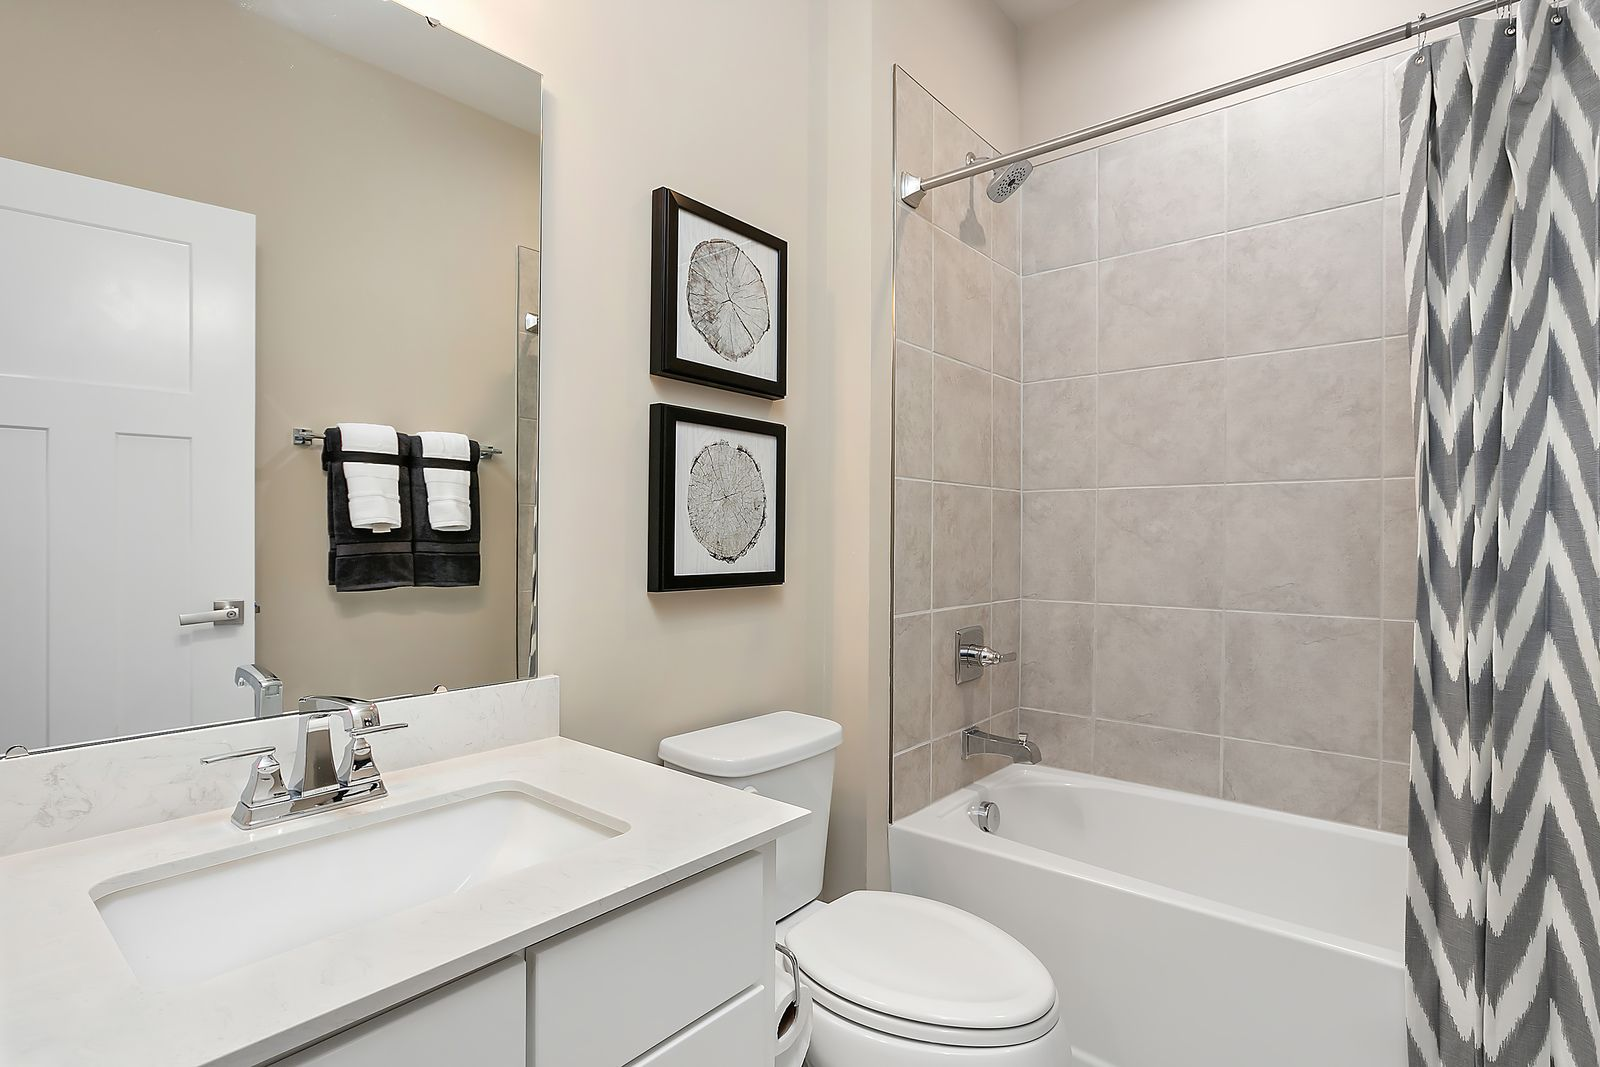 Bathroom featured in the Bramante Ranch By Ryan Homes in Chicago, IL